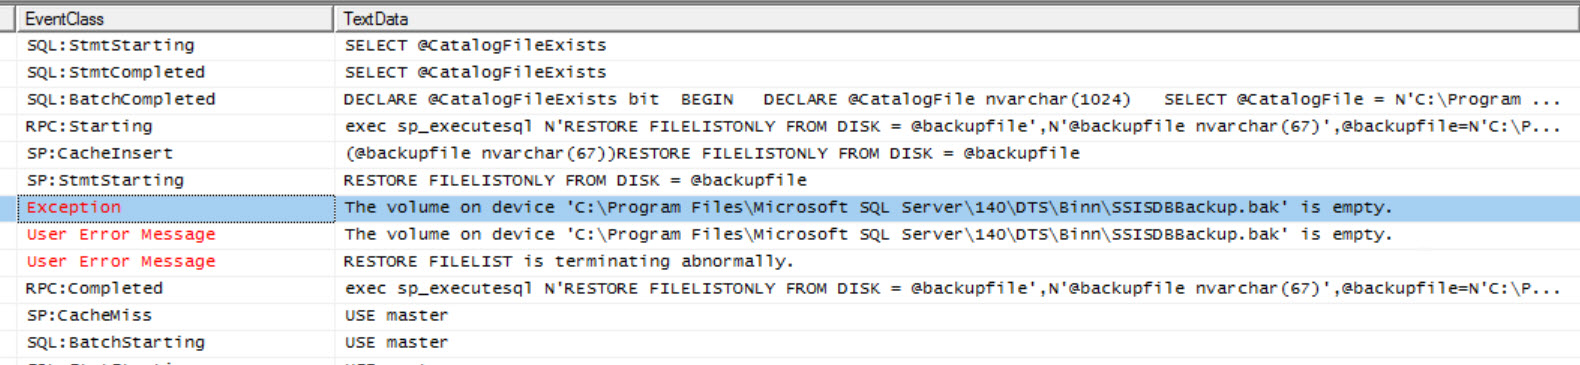 SQL SERVER - Create Catalog Error 911: Database 'SSISDB' Does Not Exist. Make Sure That he name is entered correctly ssis-cat-04